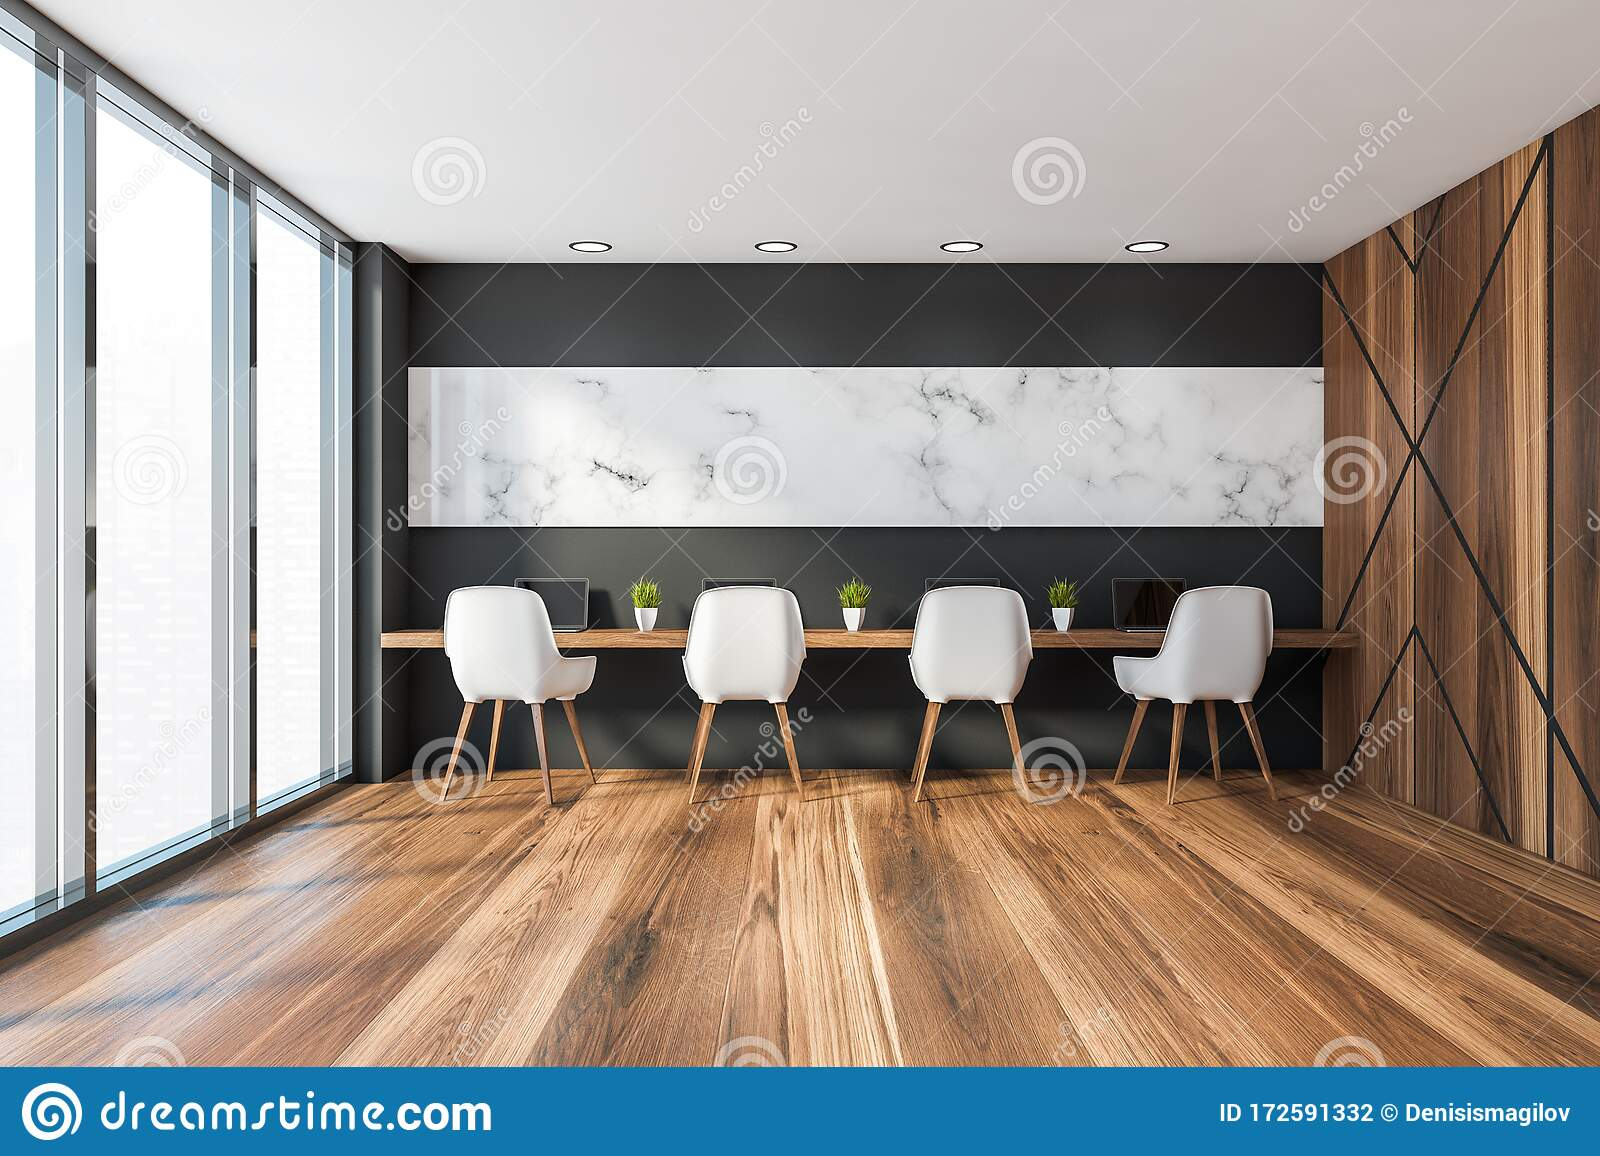 Black And Marble Coworking Style Office Interior Stock Illustration Illustration Of Floor Inside 172591332